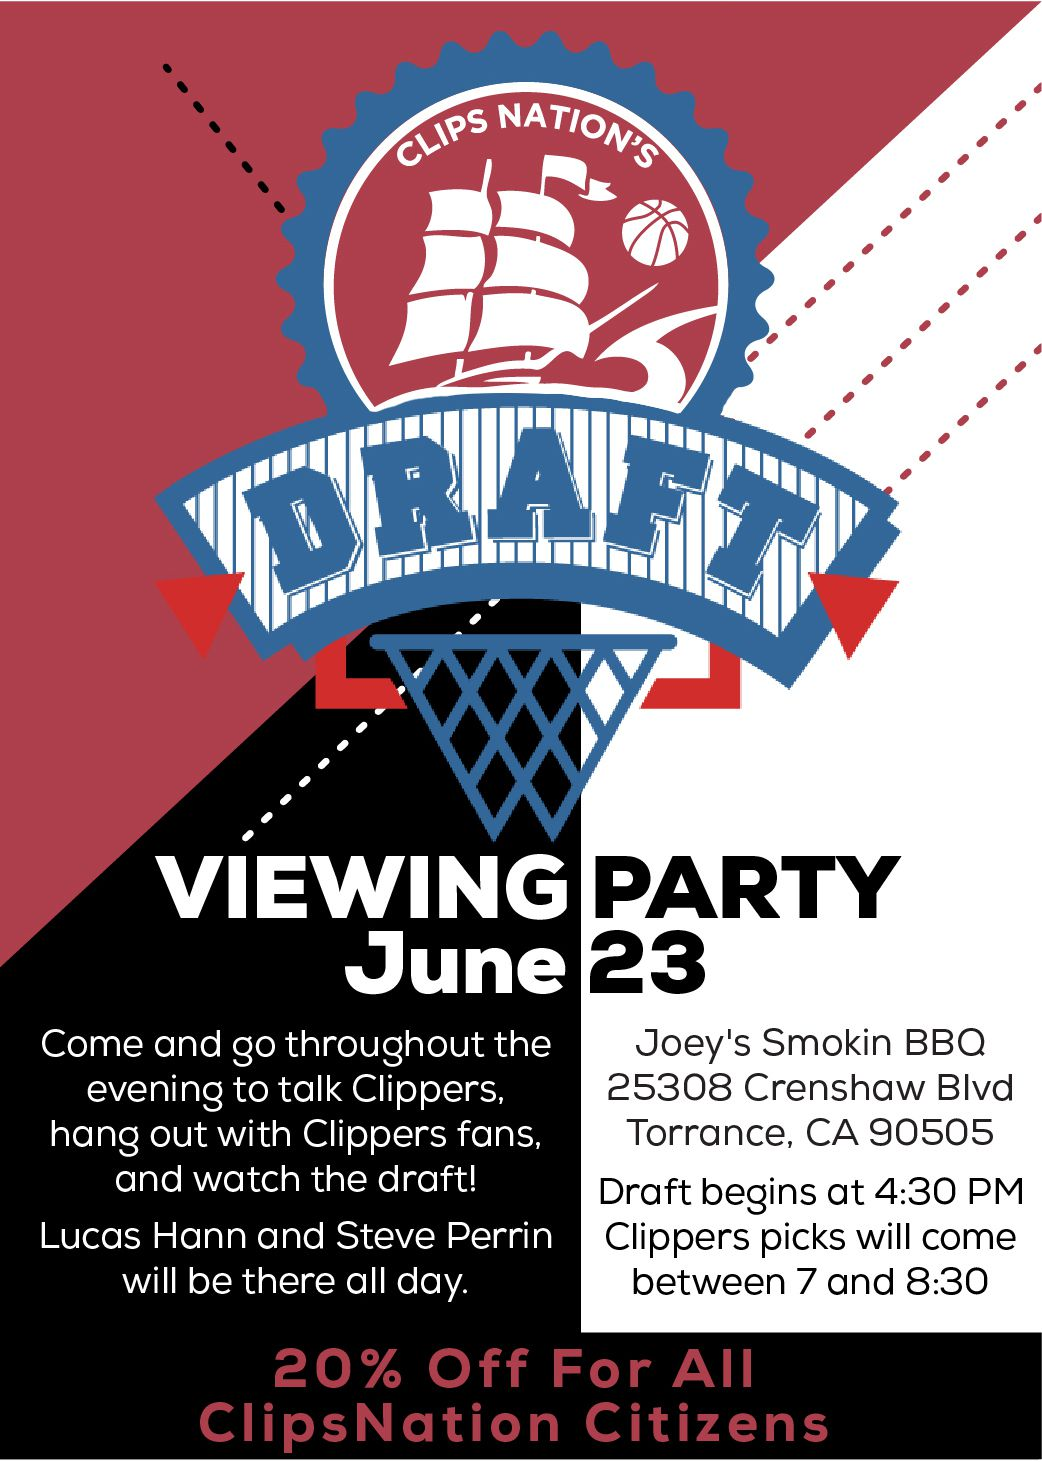 Clips Nation 2016 NBA Draft Viewing Party